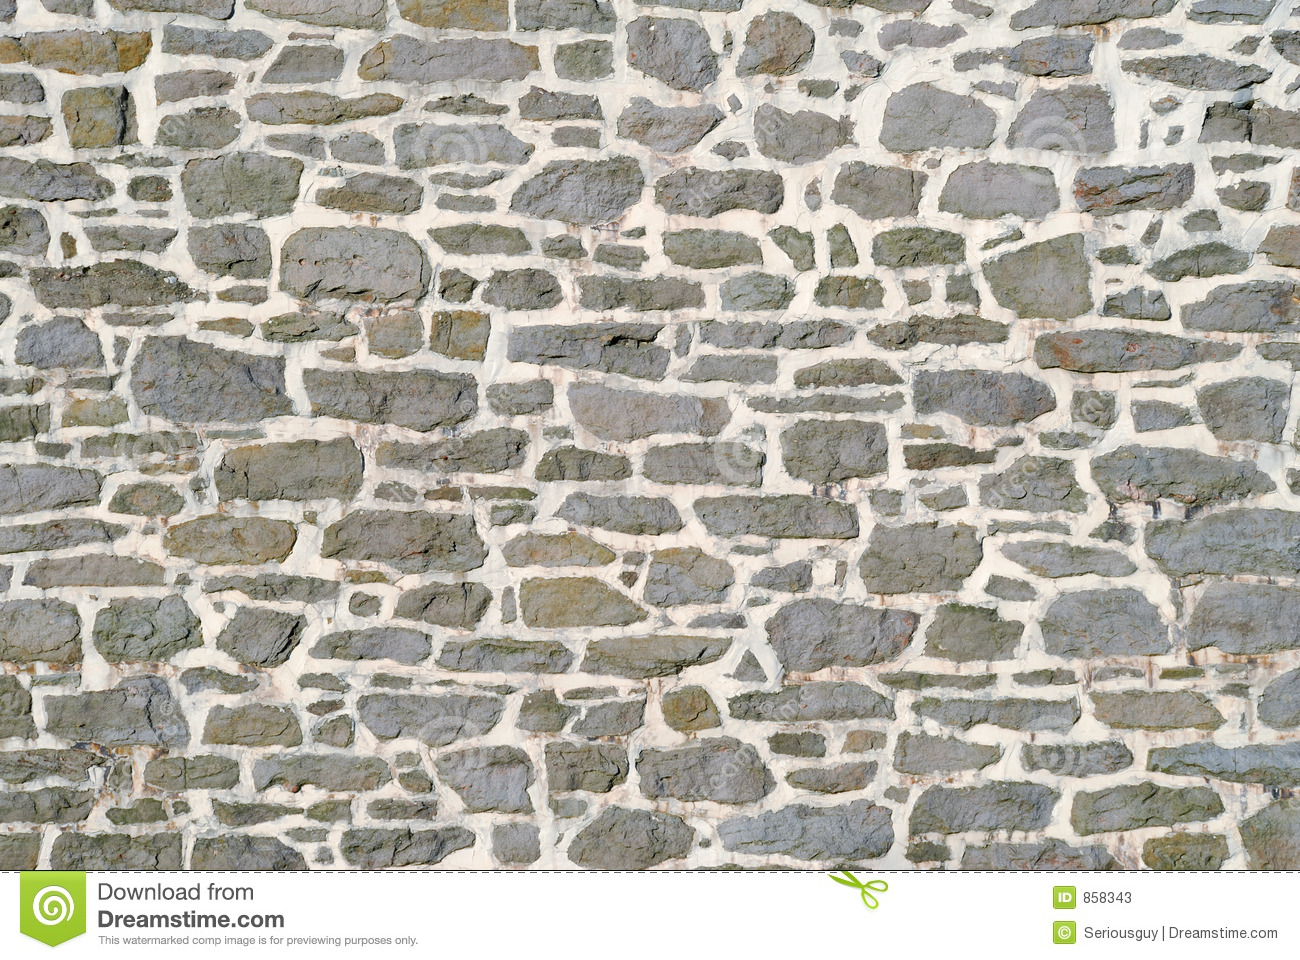 stone wall clipart clipart suggest stone wall clipart free stone wall drawing clipart